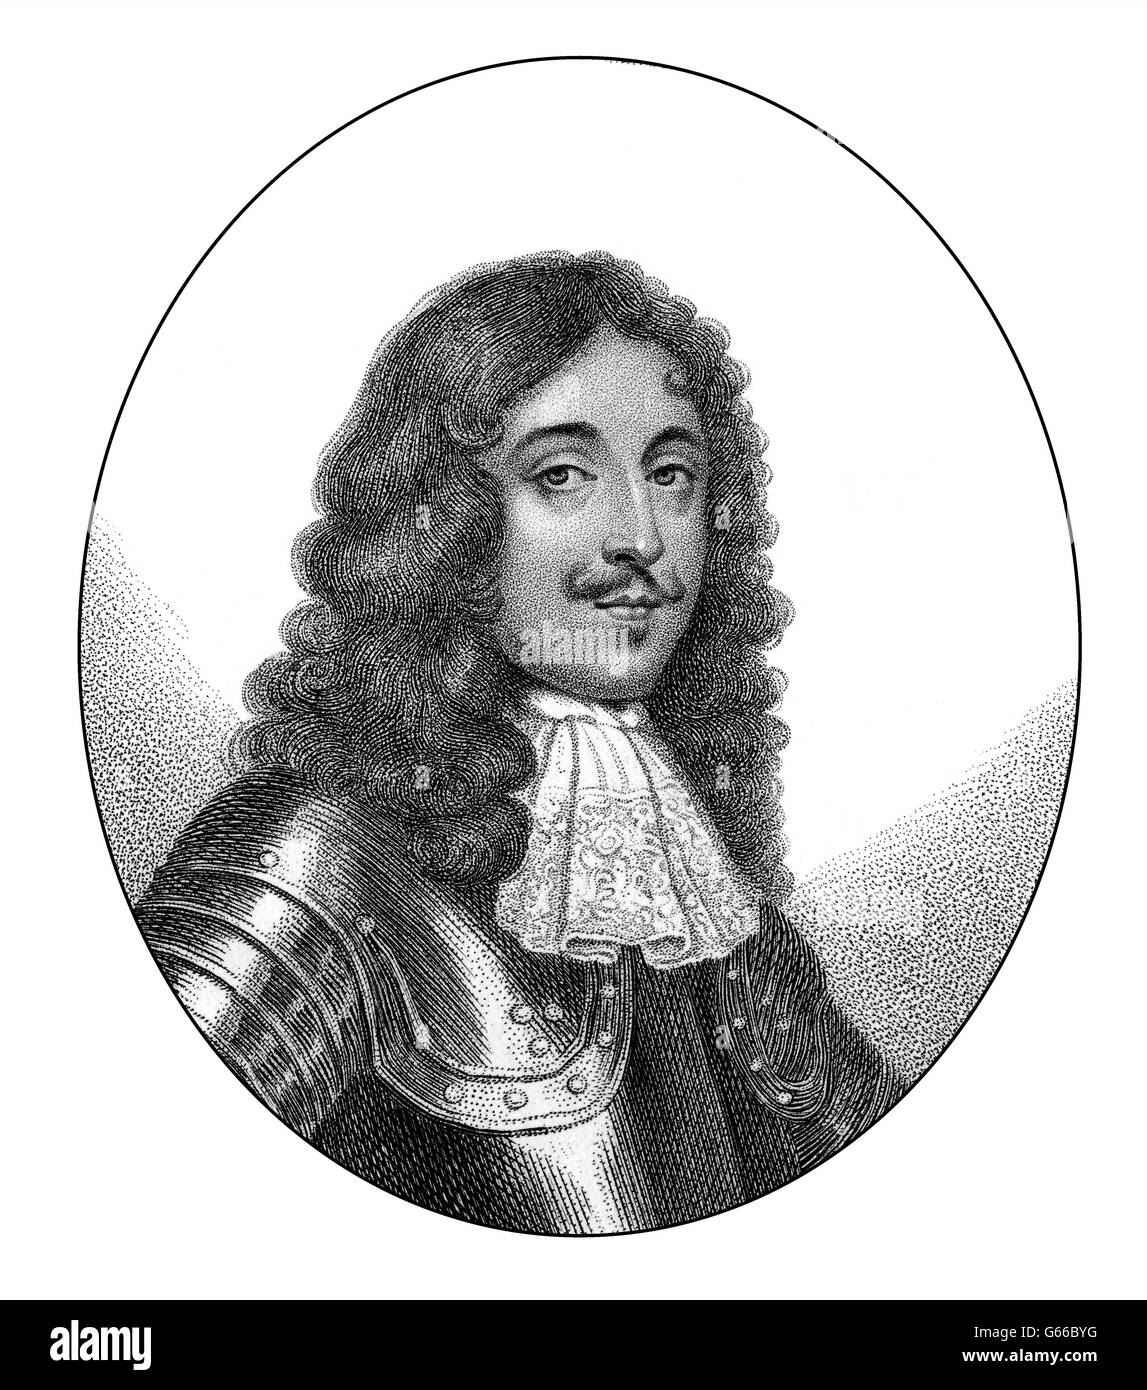 Charles Stanley, 8th Earl of Derby, 1628-1672, an English nobleman - Stock Image